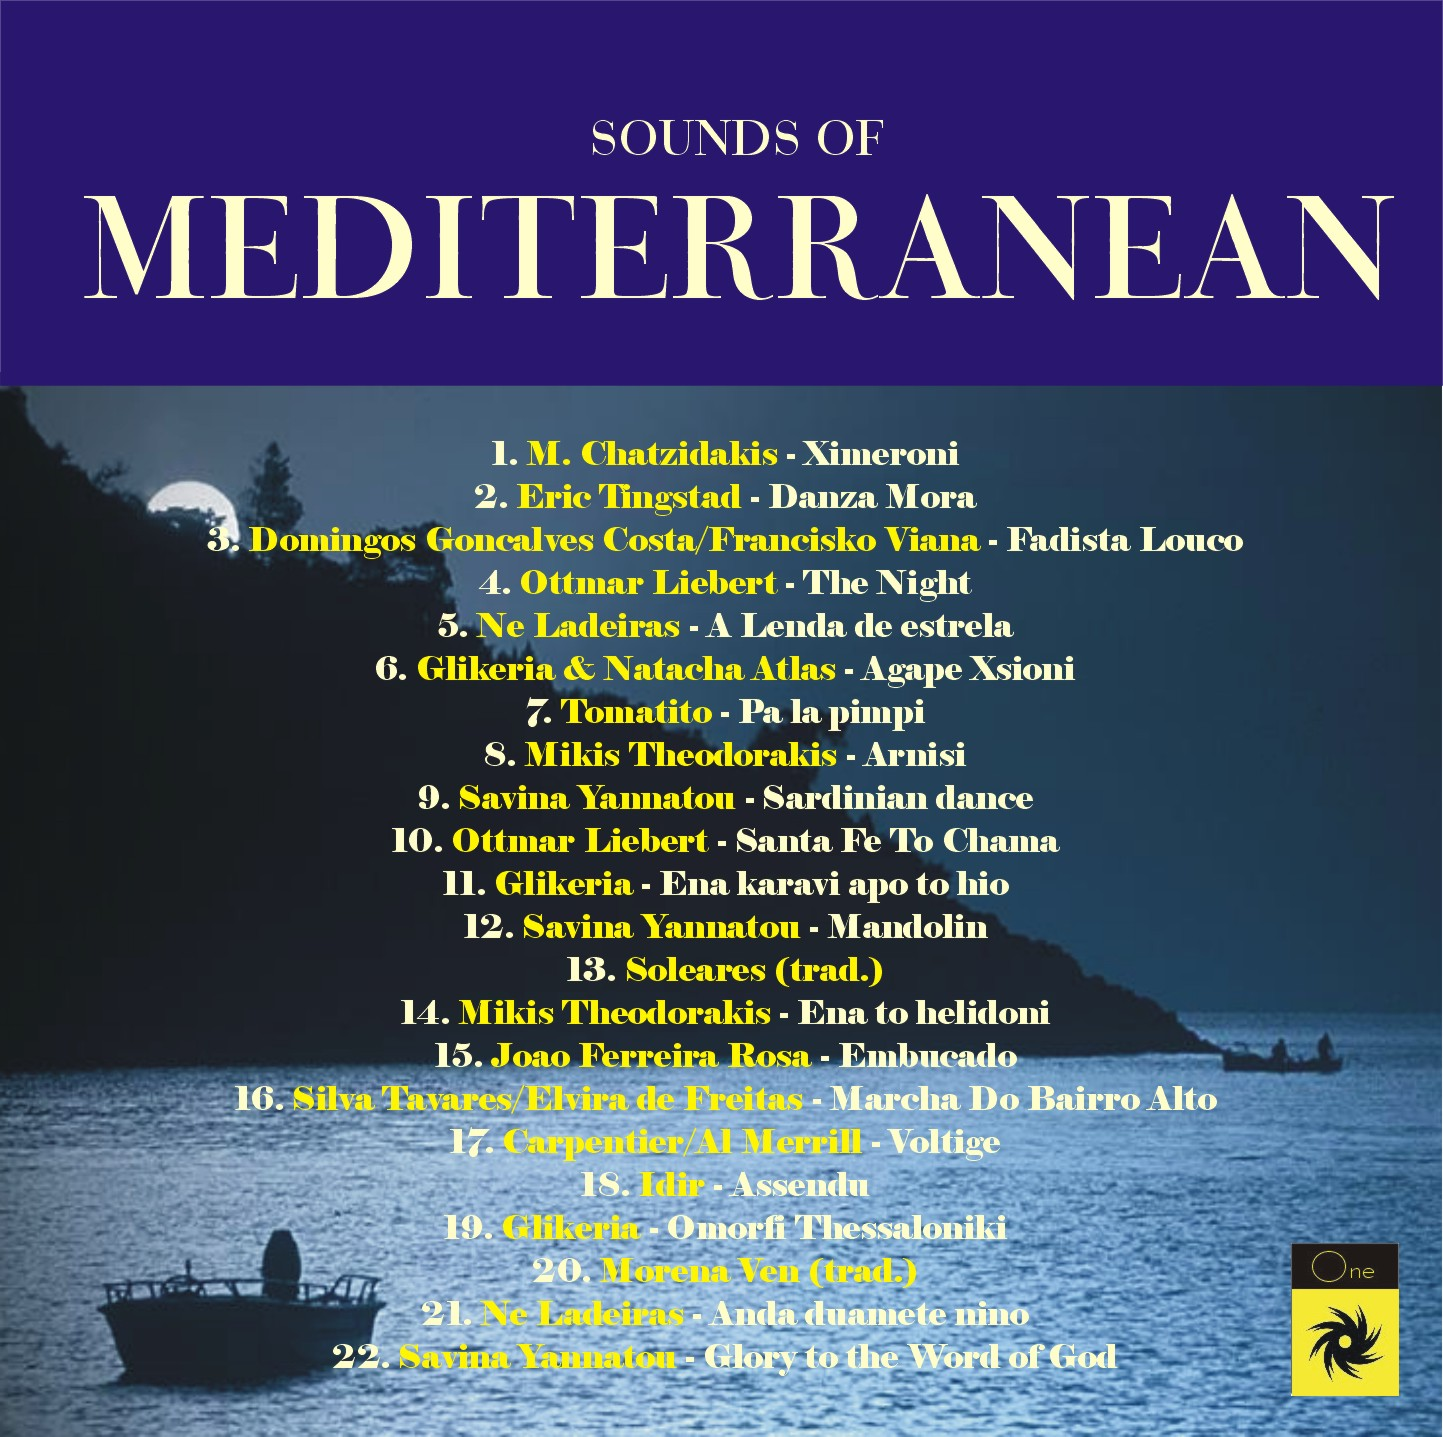 SOUNDS OF MEDITERRANEAN - various artists